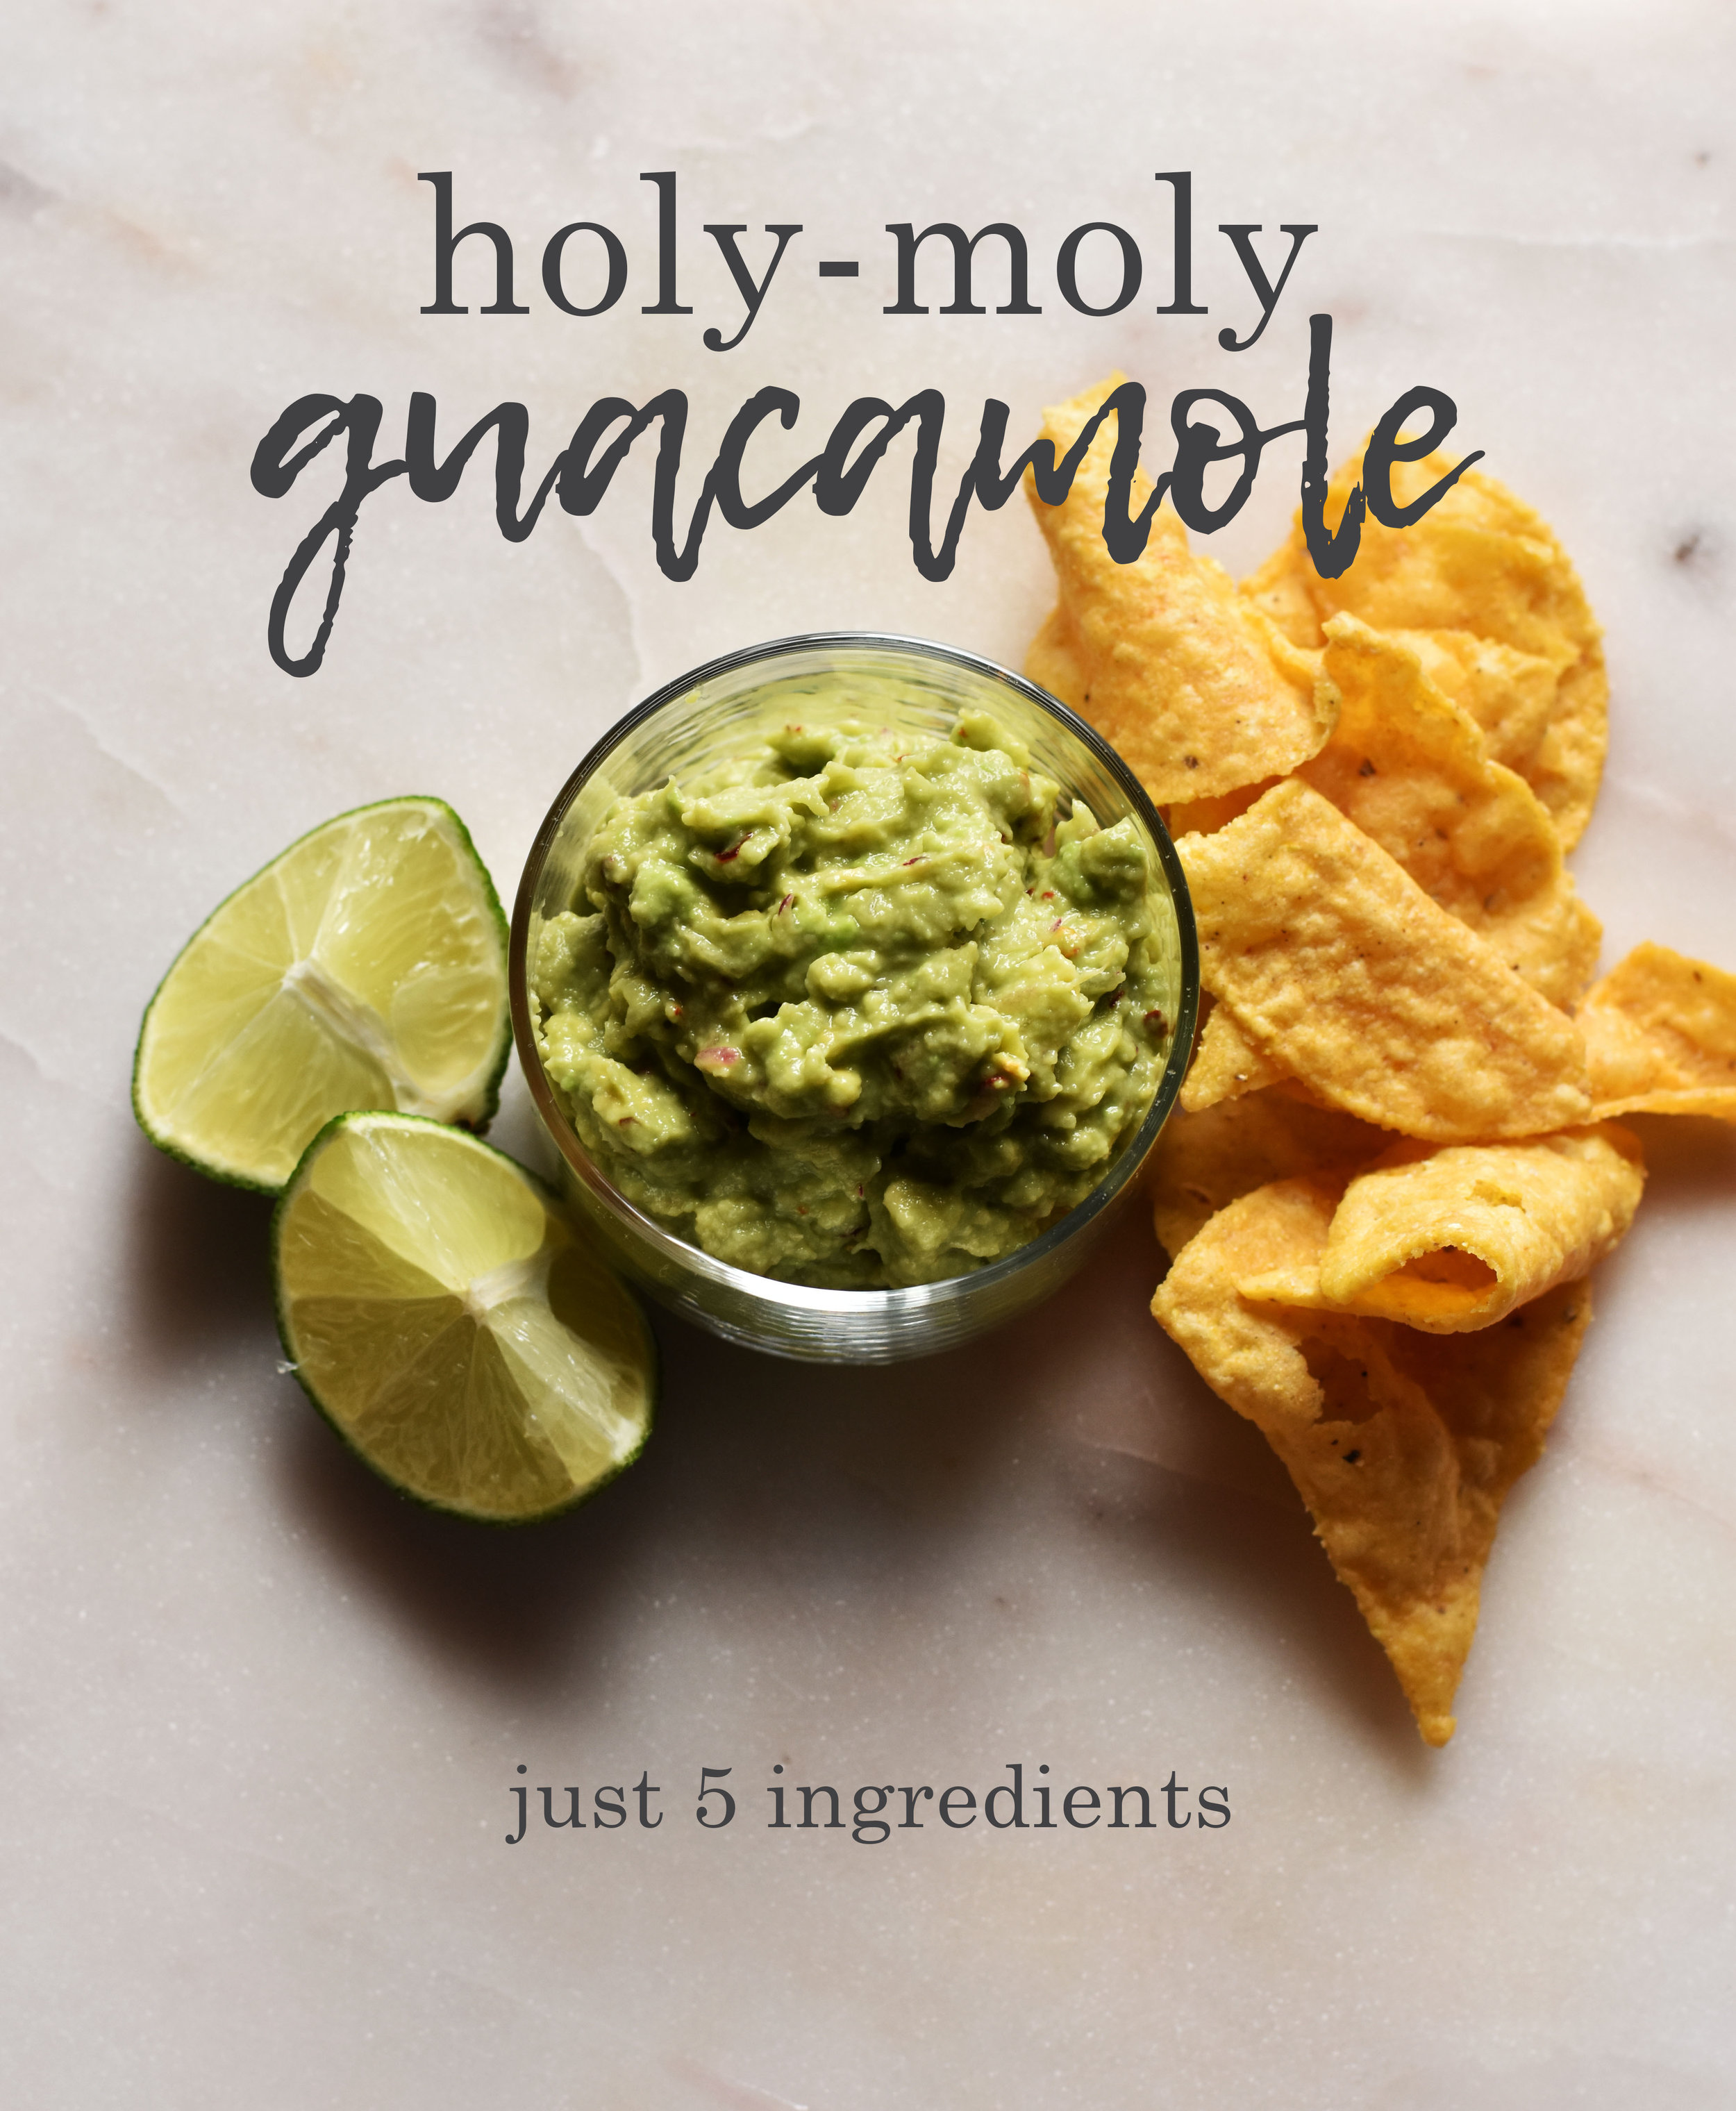 Holy Moly Guacamole Pinterest Graphic.jpg